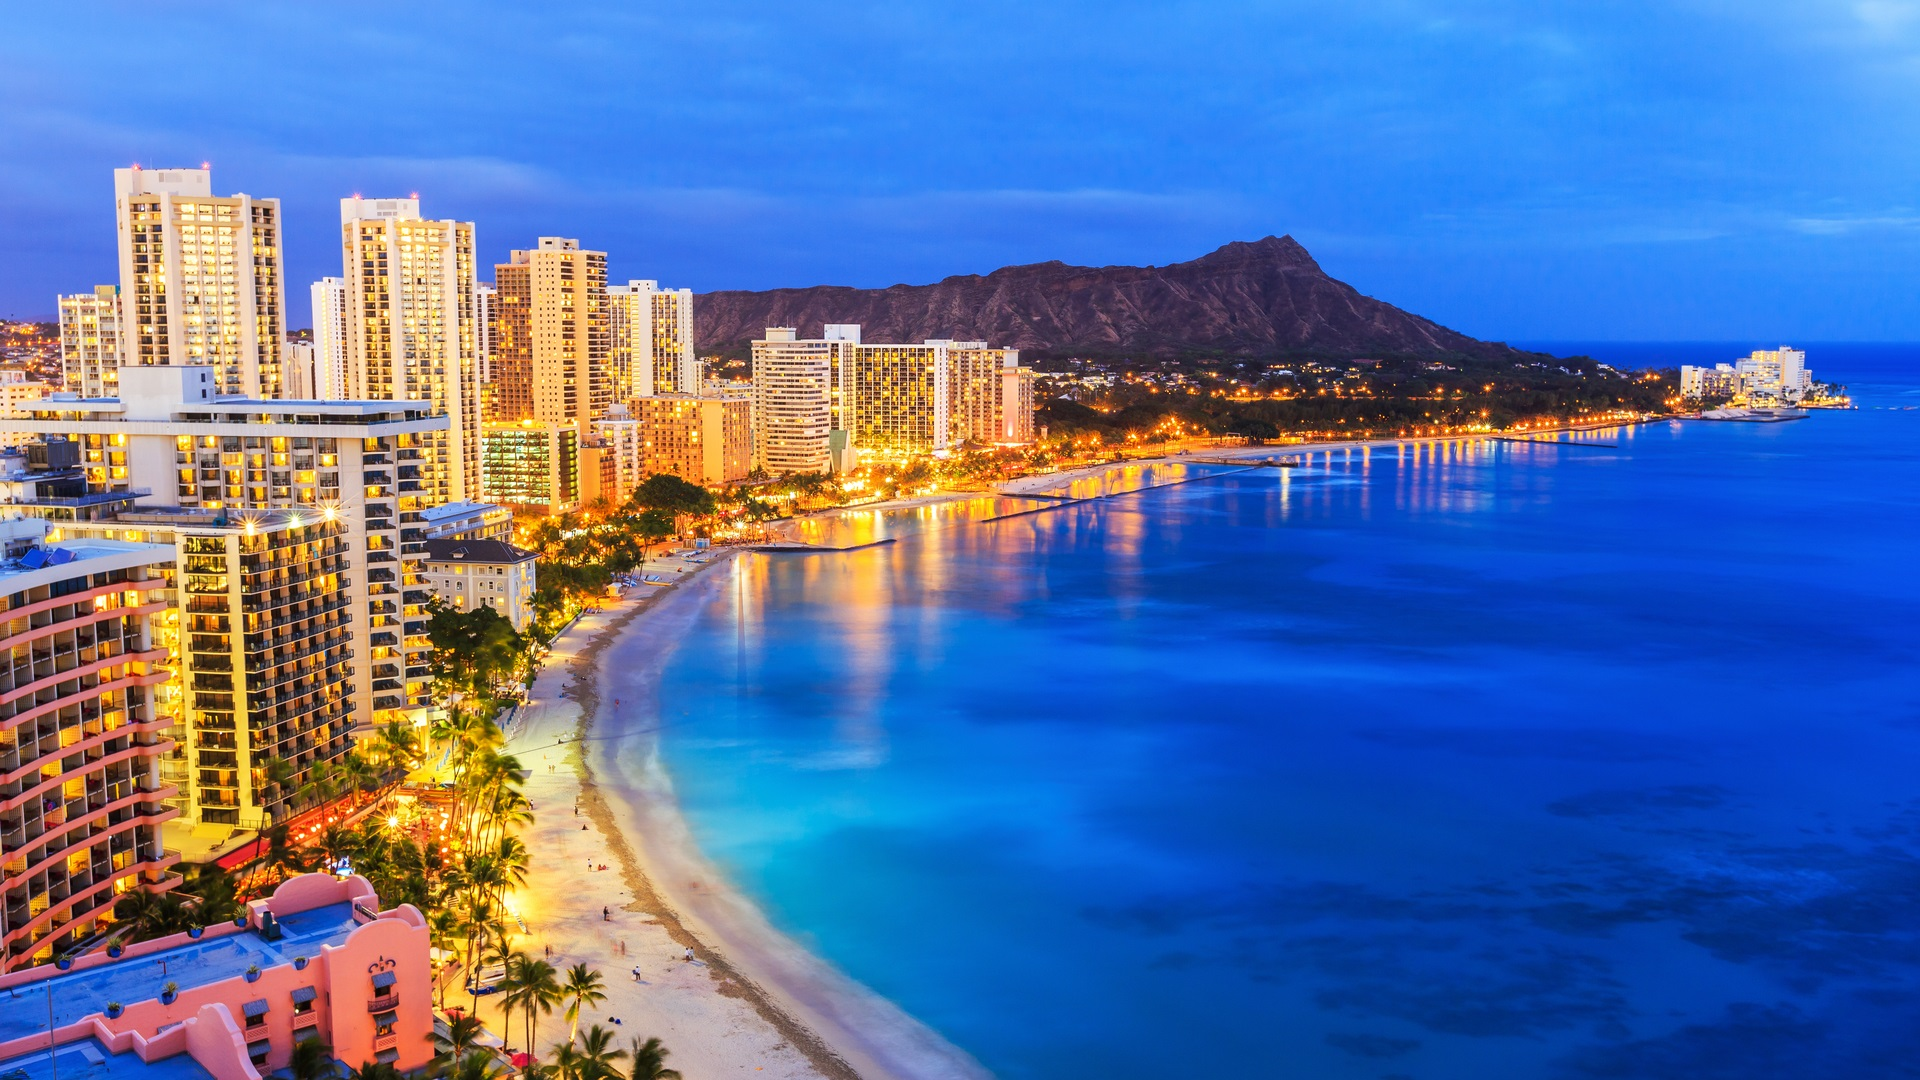 Hawaii Romantic Honeymoon Destination